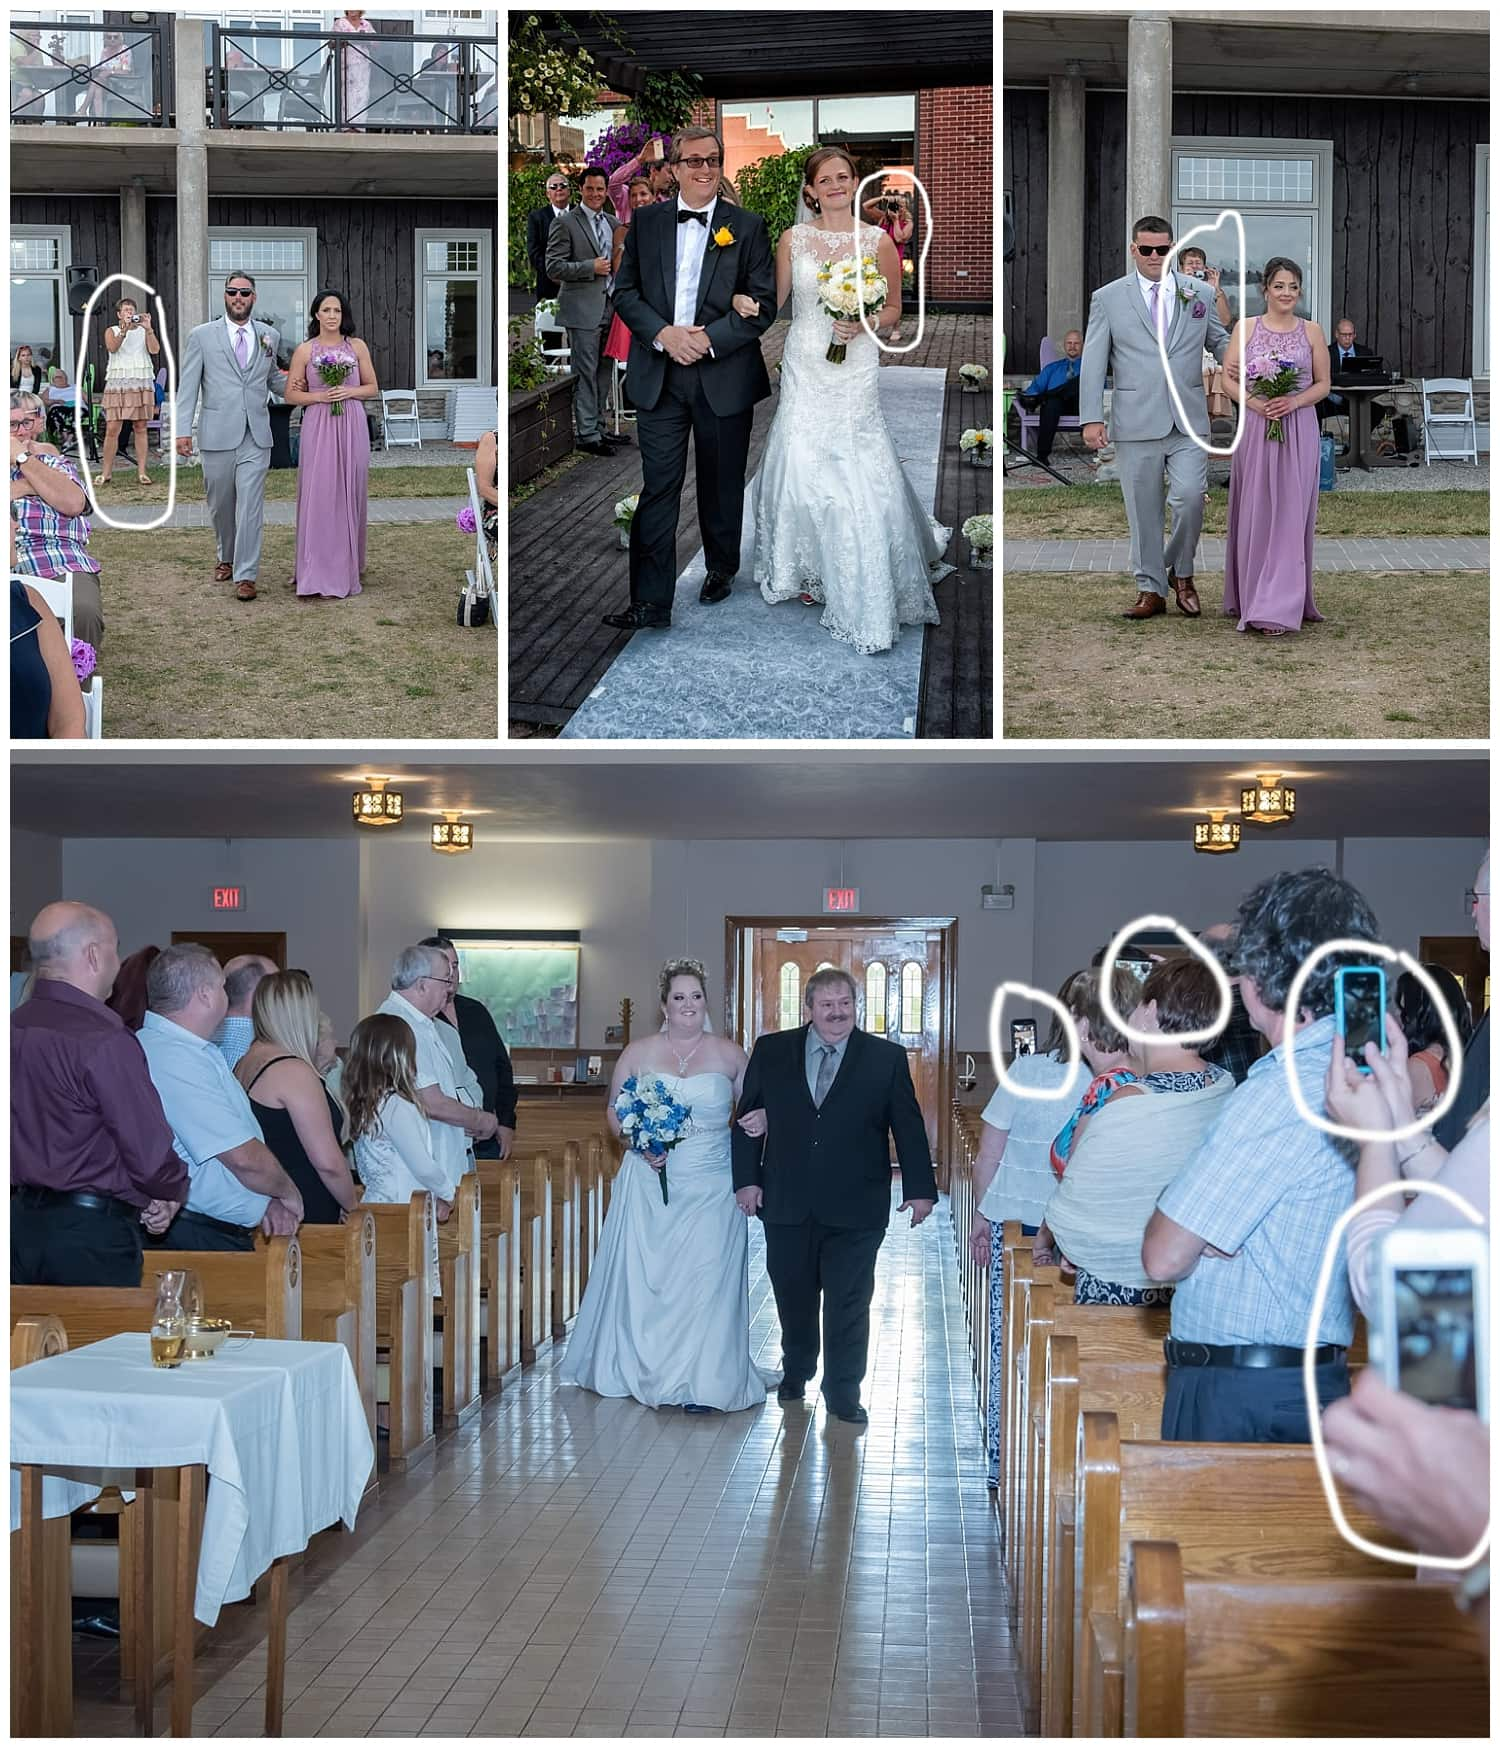 People in the background of important wedding photos, why you may want an unplugged wedding.